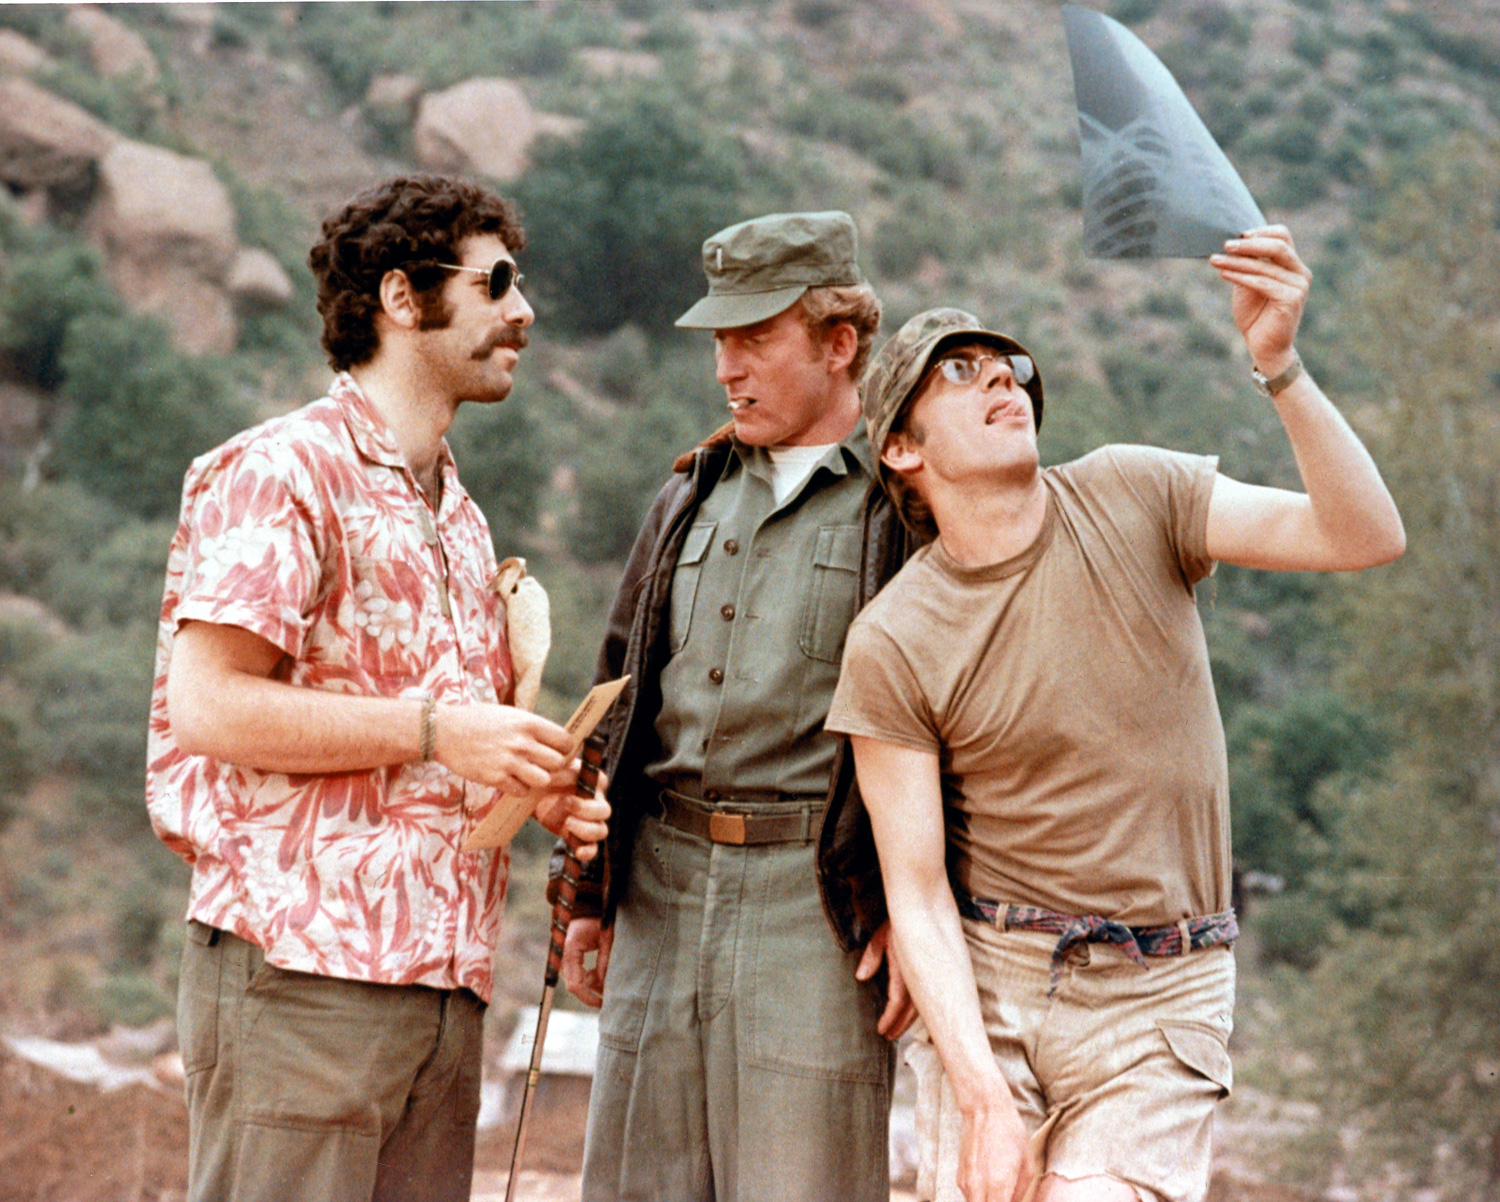 Elliot Gould, left, talking with a uniformed officer smoking a cigarette, and Donald Sutherland, right, examining an x-ray in M*A*S*H.